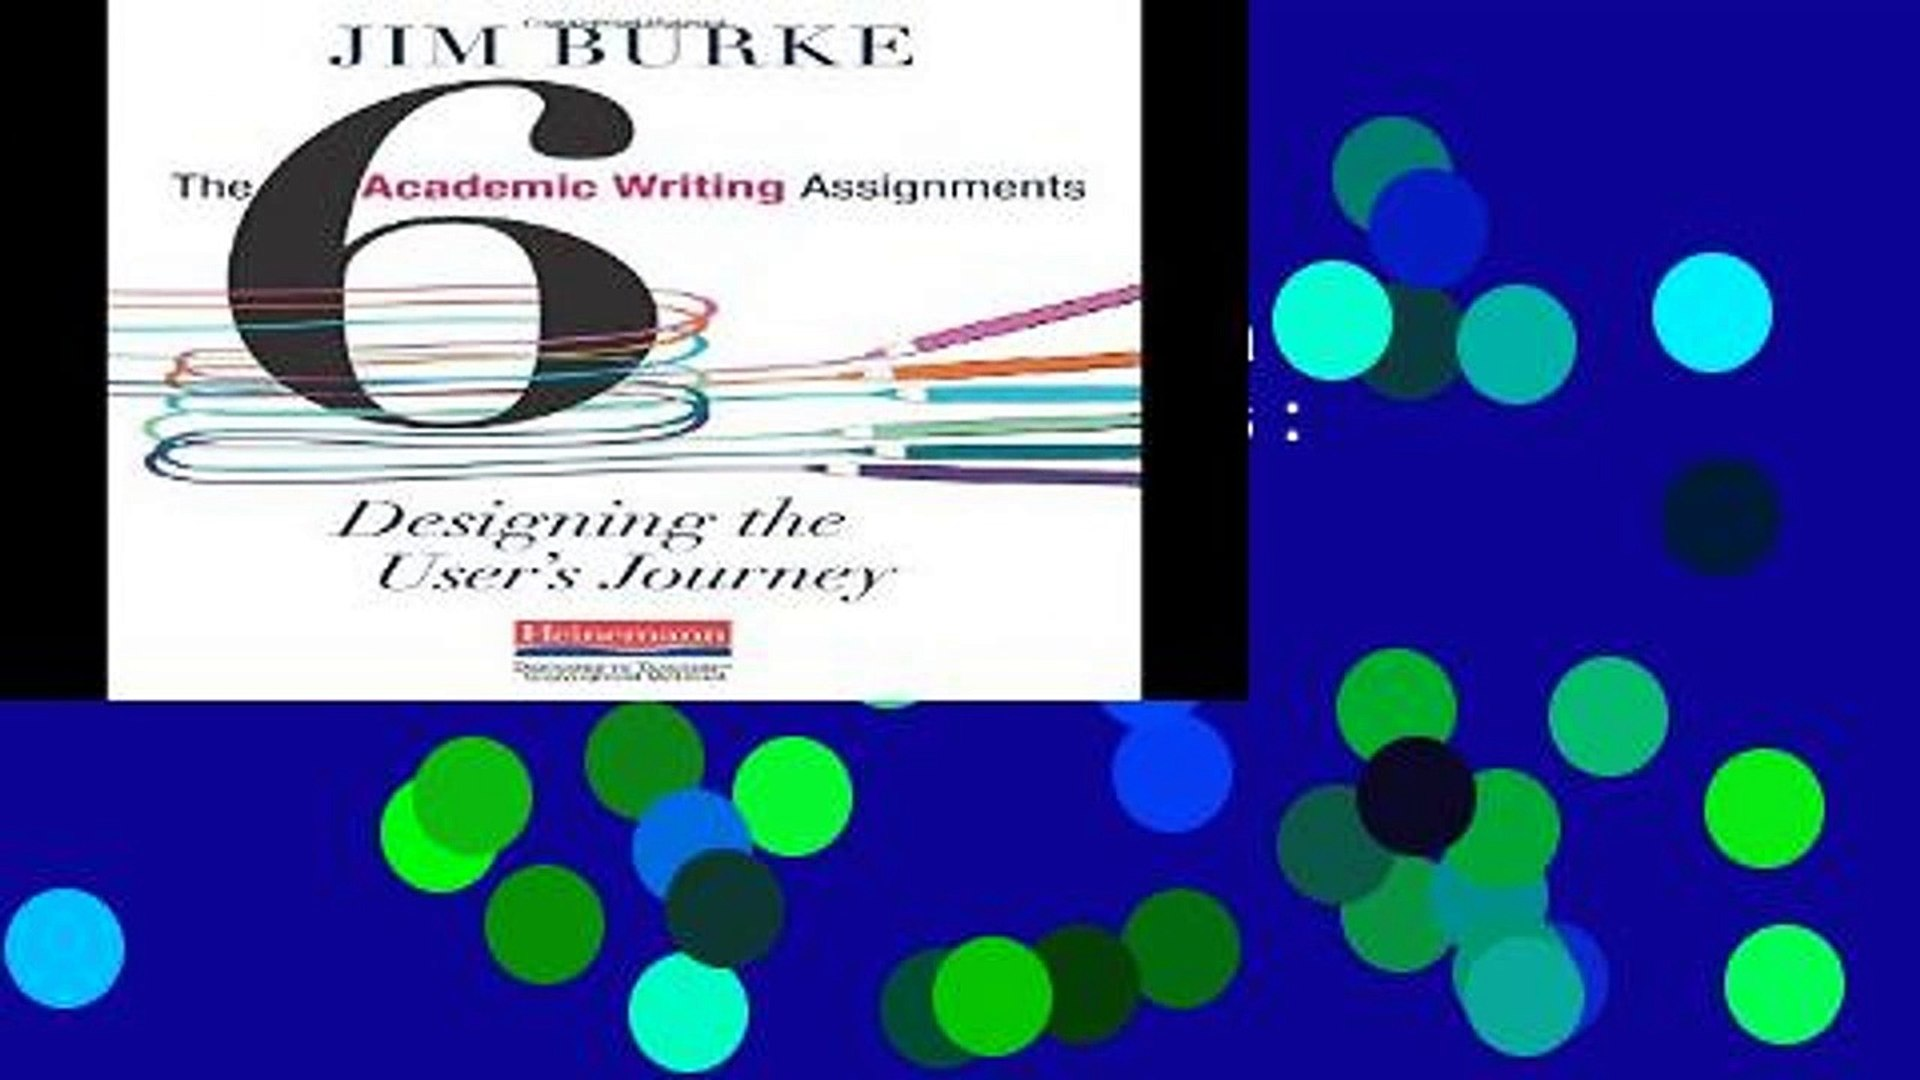 [P D F] The Six Academic Writing Assignments: Designing the User s Journey